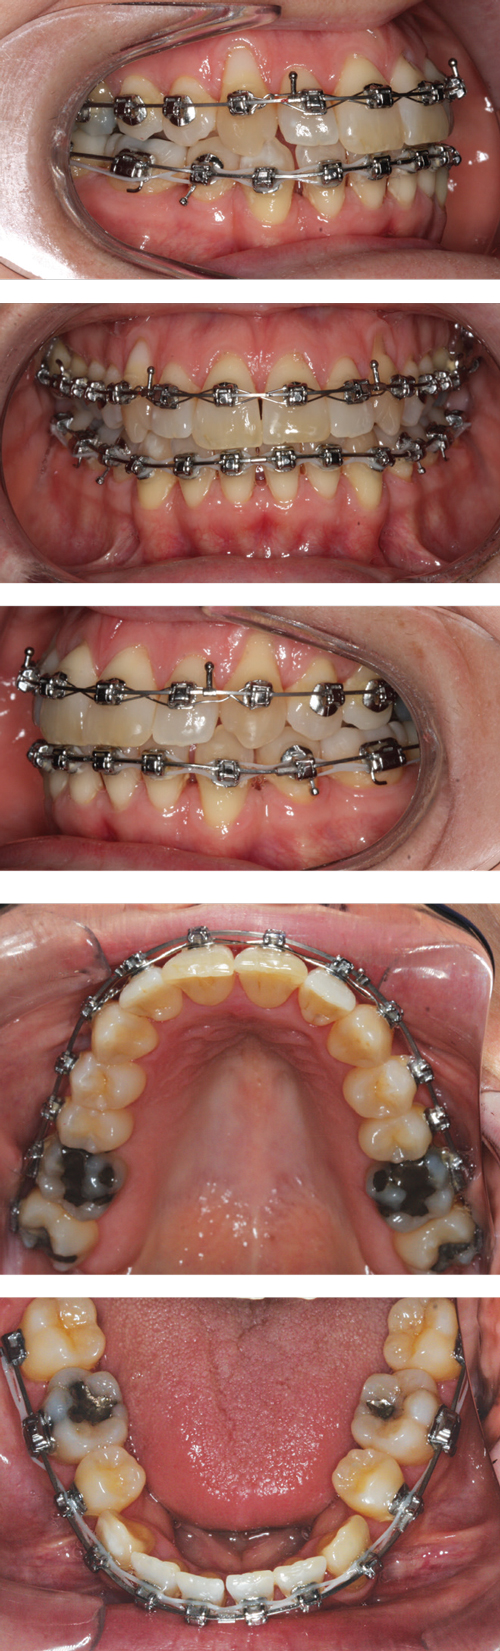 A Case For Extractions Orthodontic Products